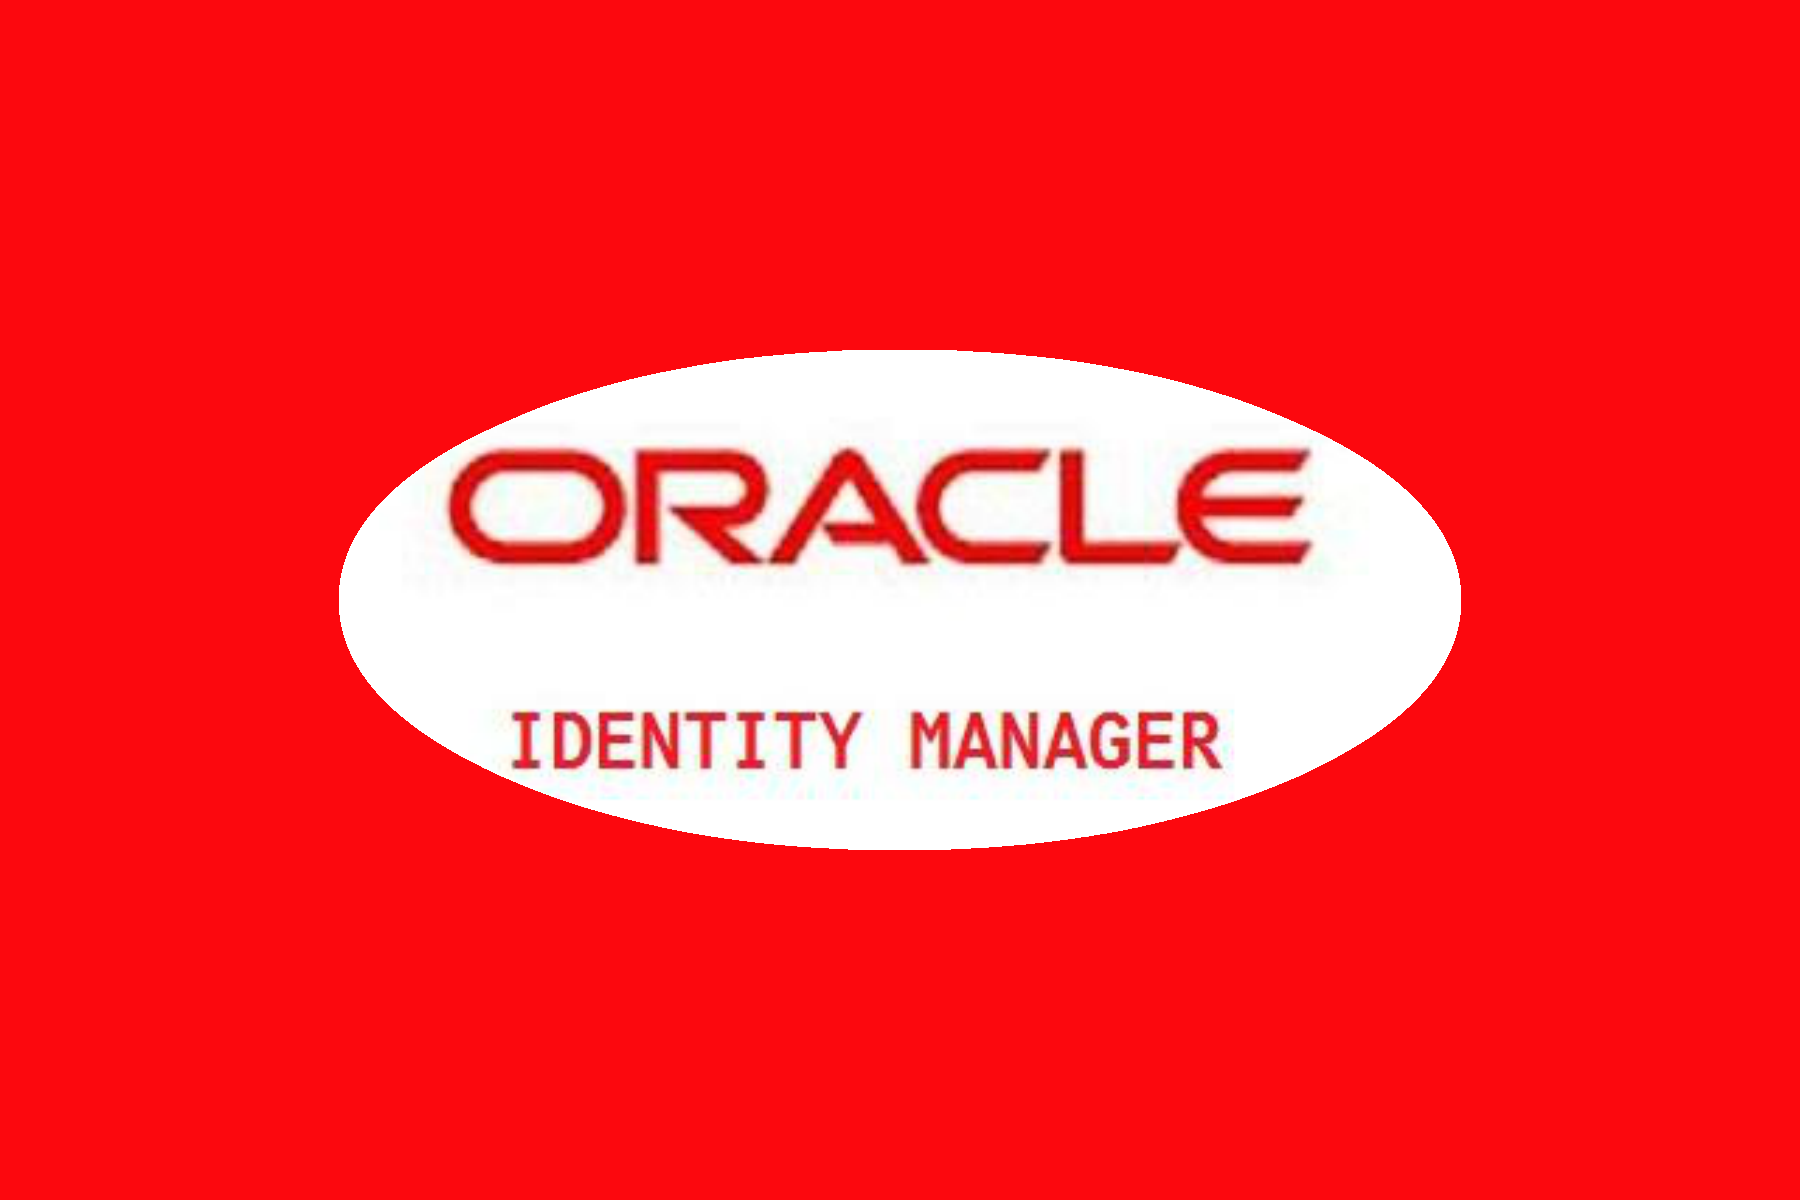 Oracle Identity Manager Training in Chennai